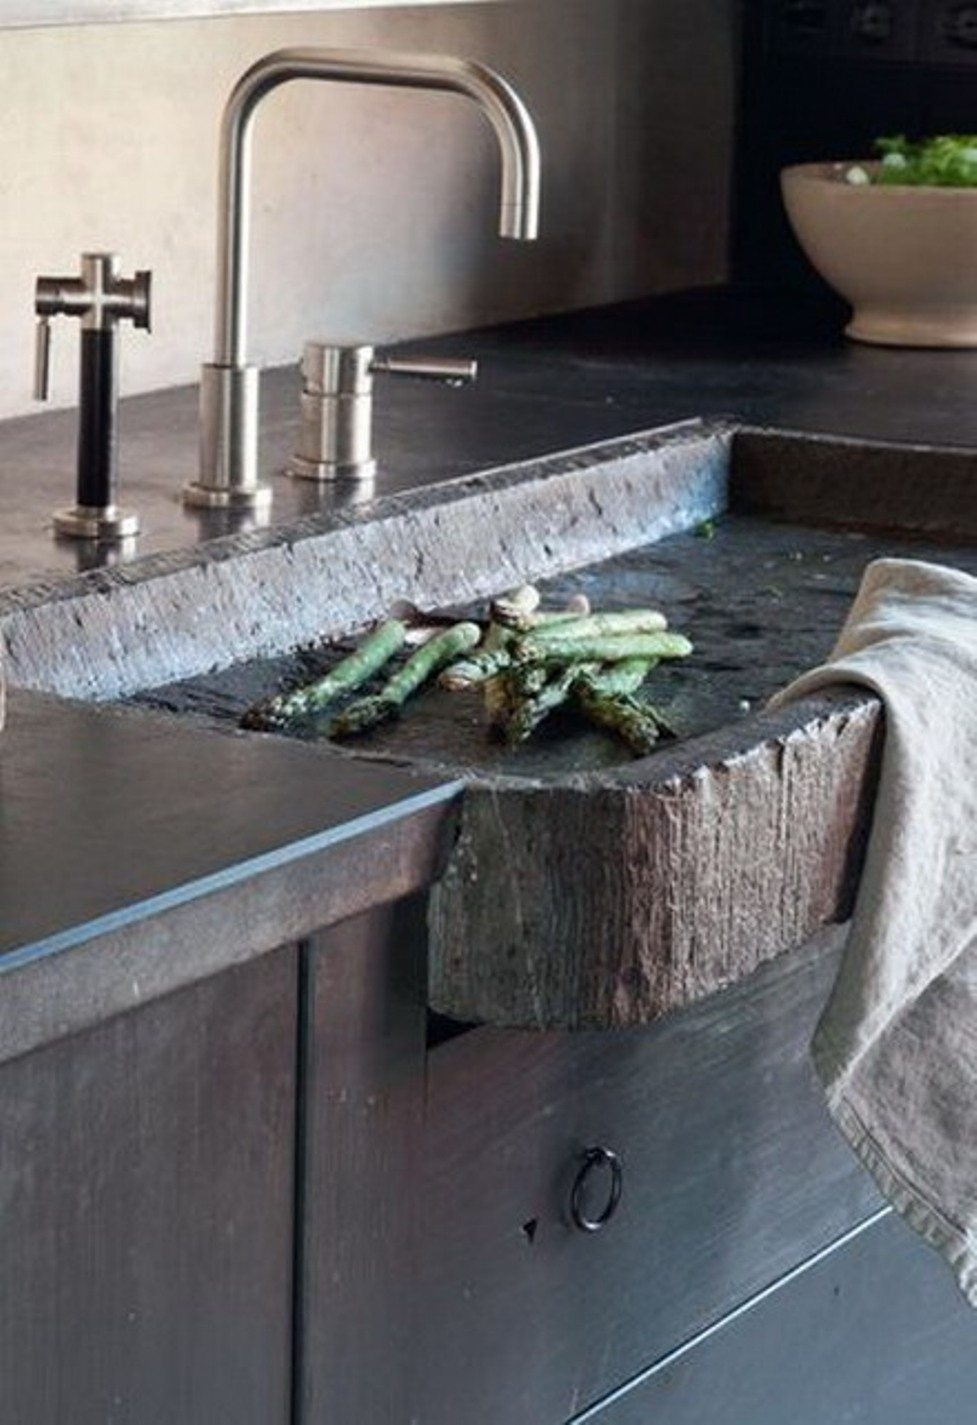 Ideas, rustic kitchen sink faucets rustic kitchen sink faucets rustic modern kitchen features modern faucet and hammered stone 977 x 1425  .